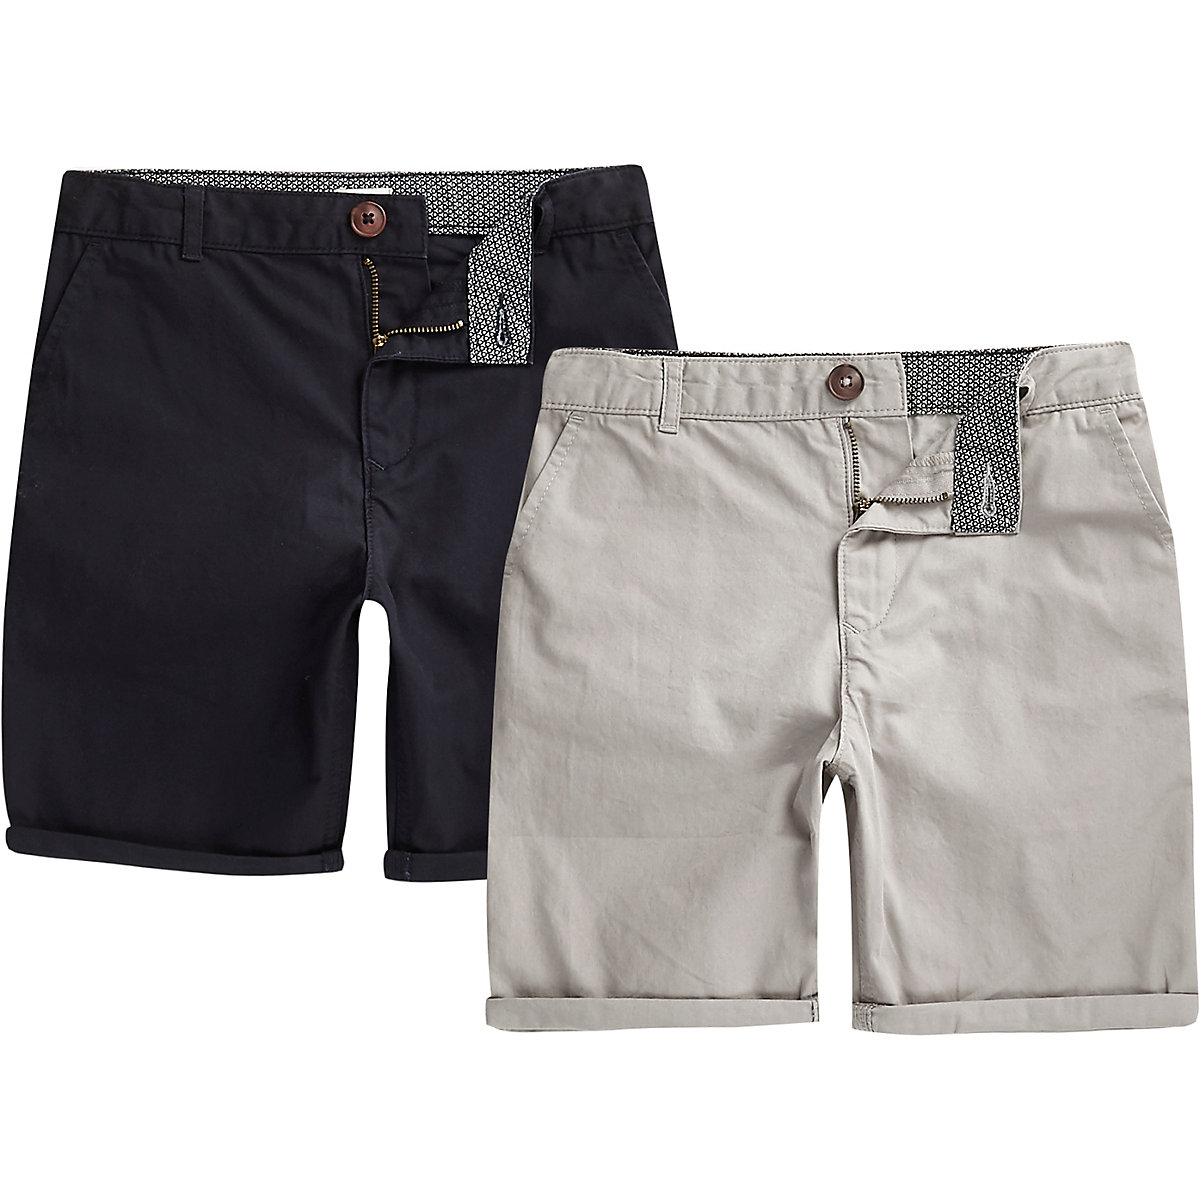 Boys navy and grey chino shorts multipack